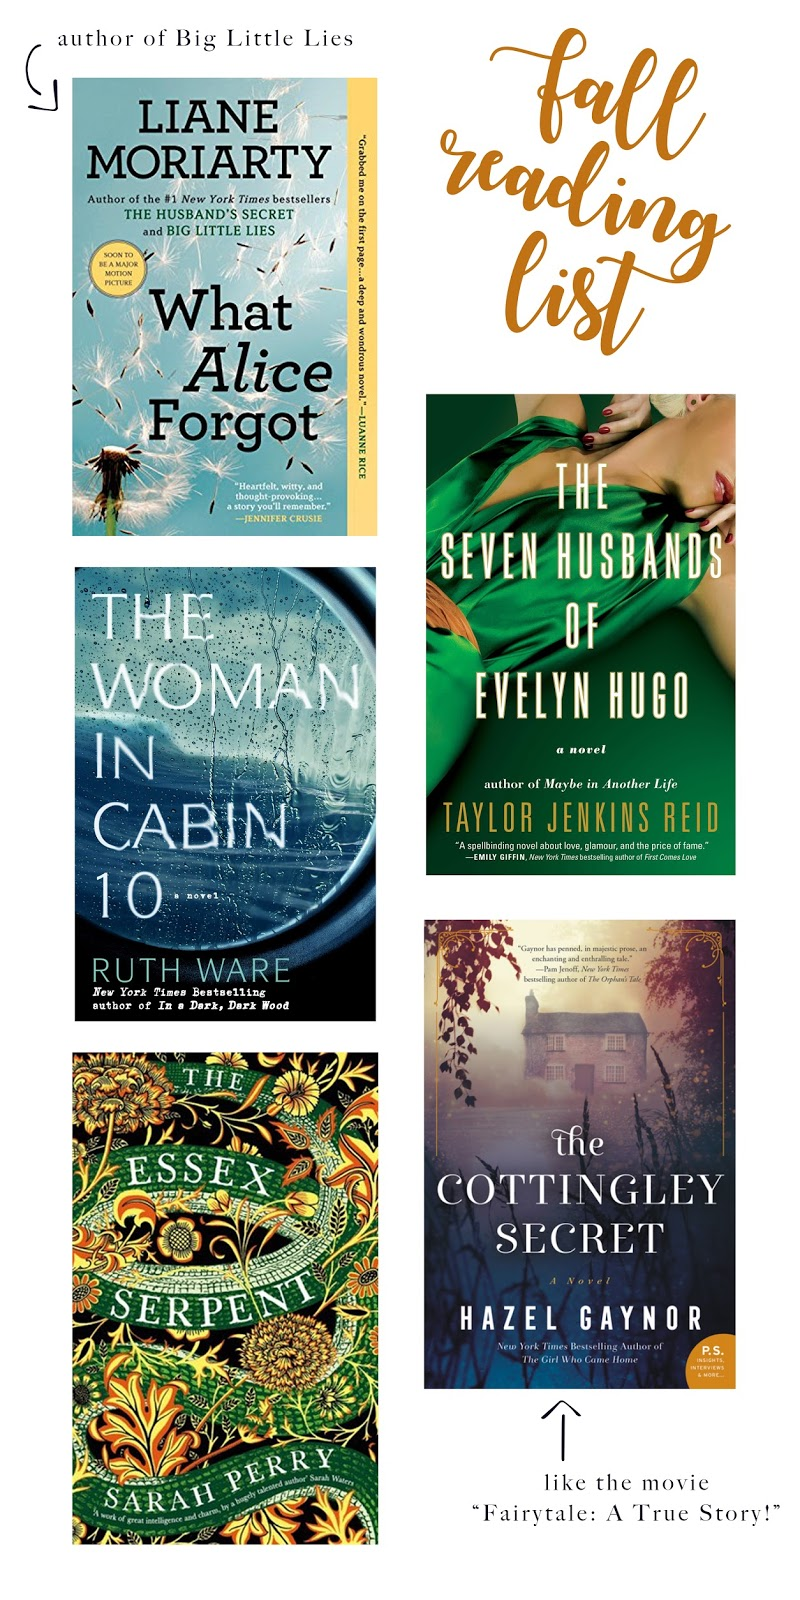 reading, books, reading list, what I'm reading, liane moriarty, what Alice forgot, the seven husbands of Evelyn Hugo, Taylor Jenkins Reid, the woman in cabin 10, ruth ware, the Essex serpent, Sarah Perry, the cottingley secret, hazel Gaynor